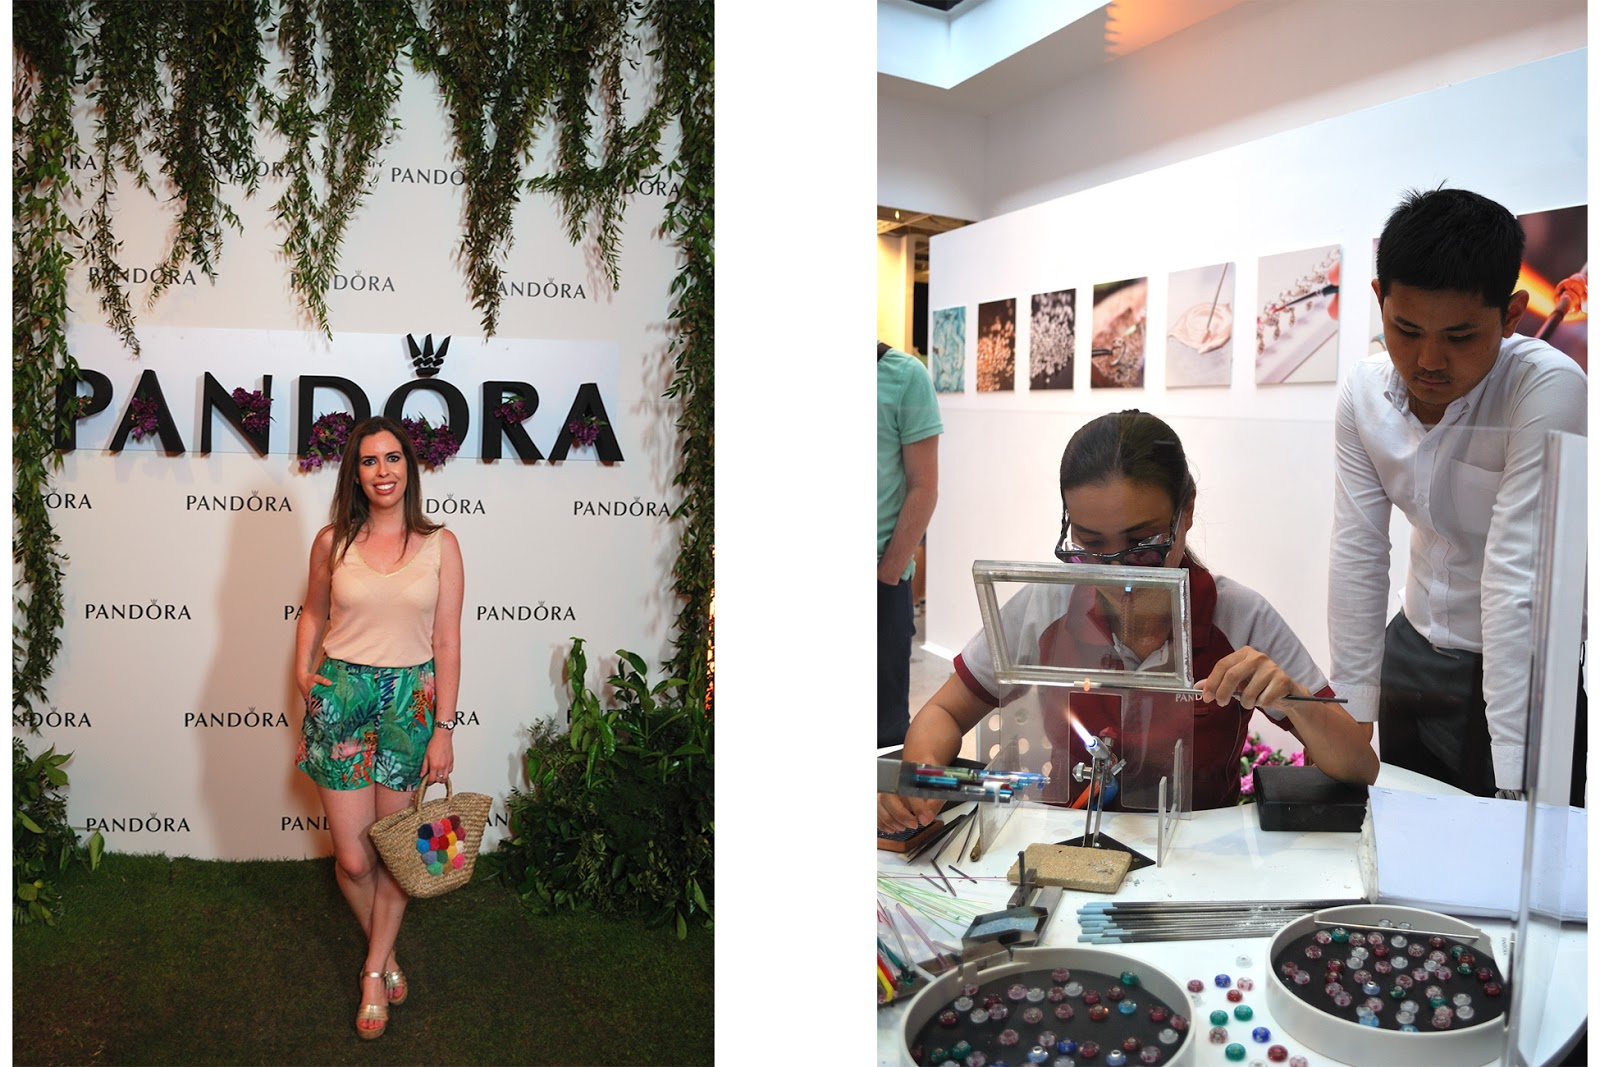 #casapandora pandora jewelry exhibit madrid